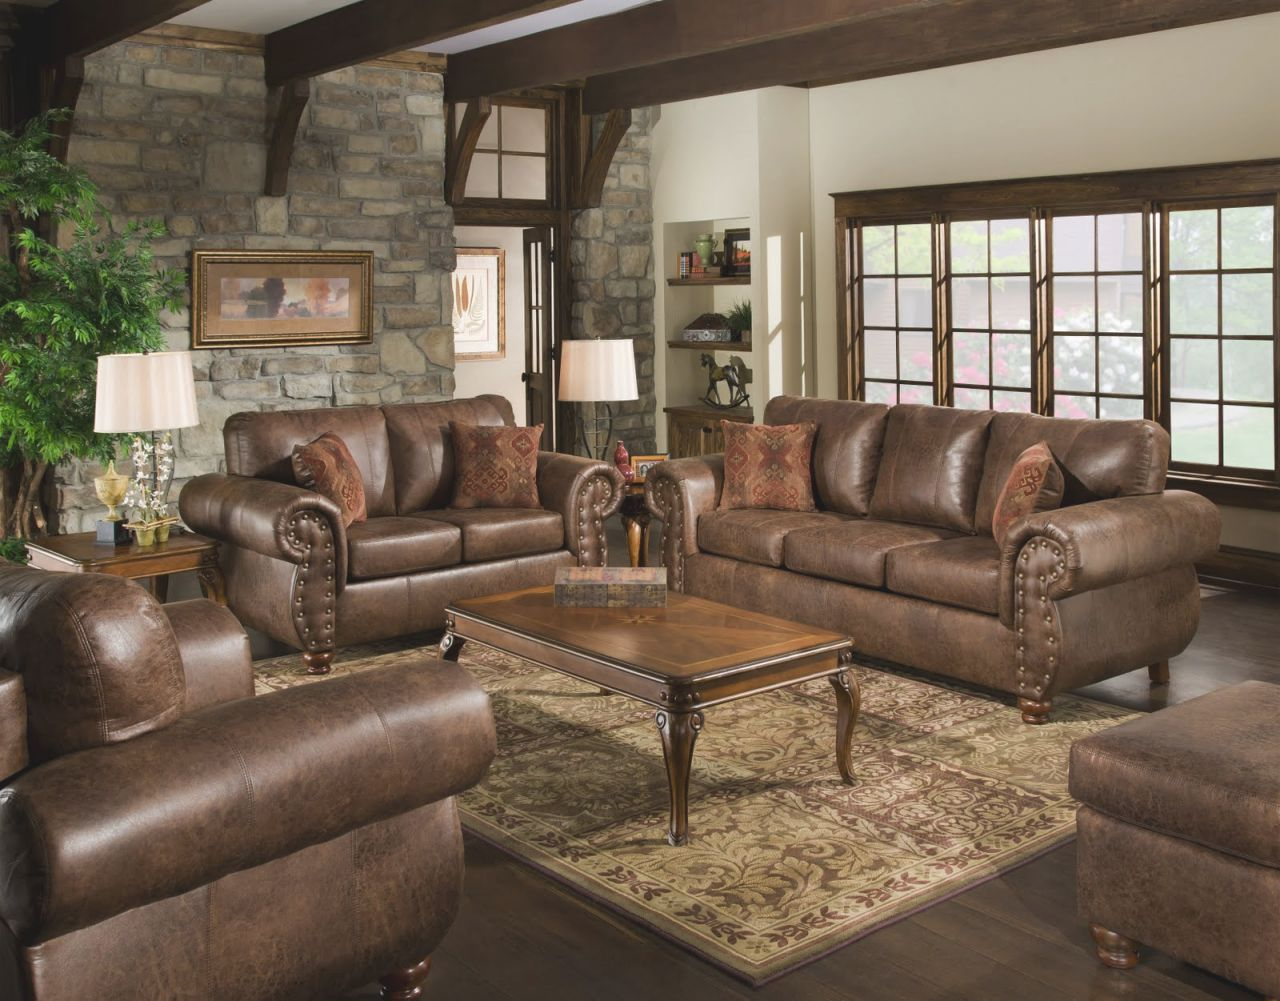 Best Of Living Rooms With Leather Furniture Decorating Ideas Awesome Decors